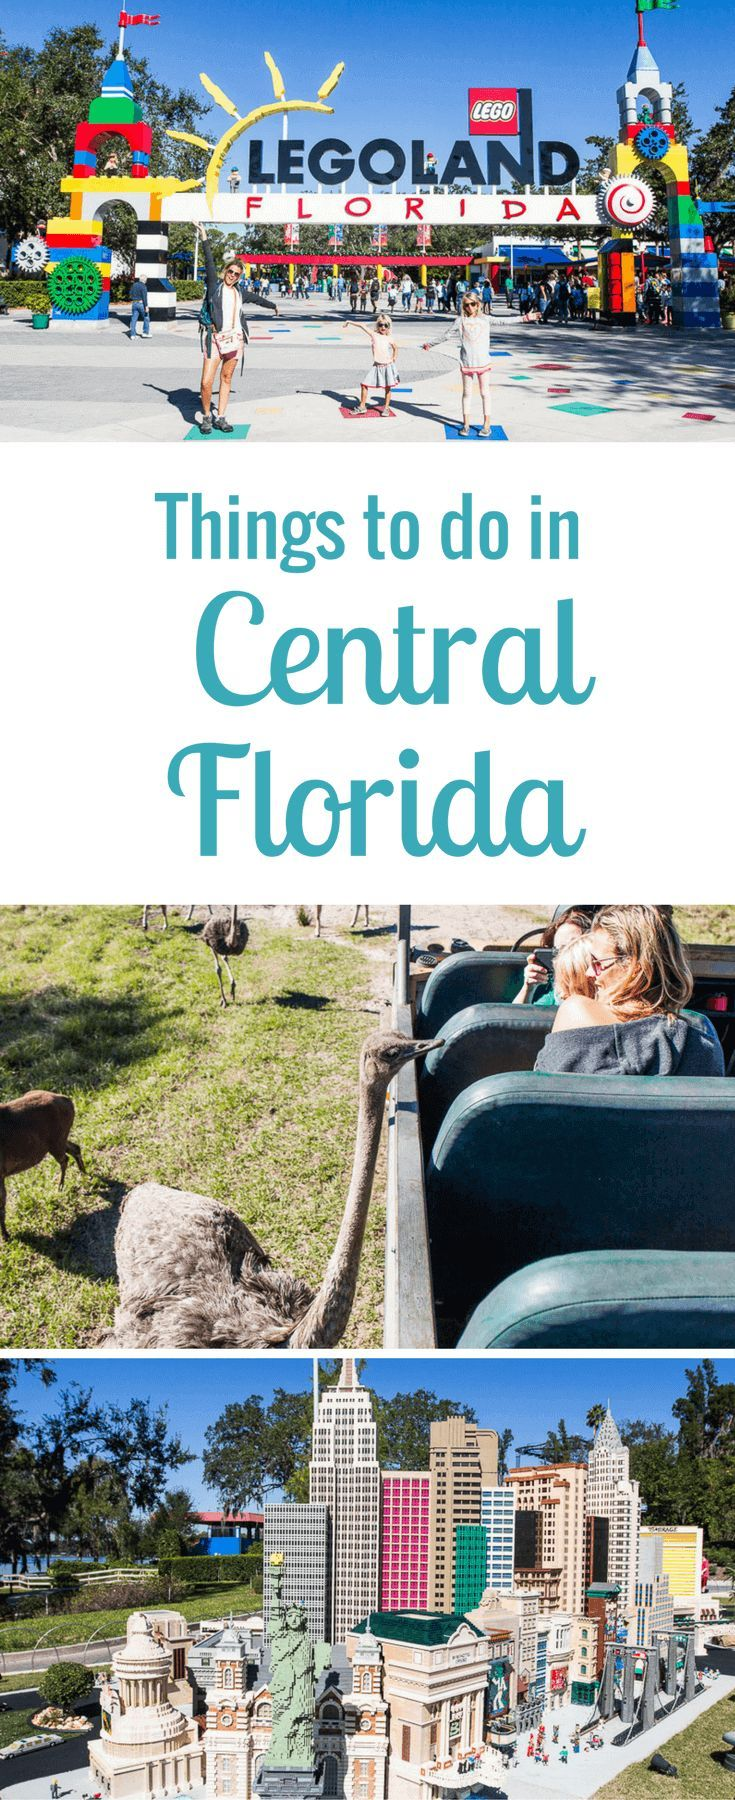 3 Exciting Things To Do In Central Florida Besides Disney Legoland Florida Central Florida Florida